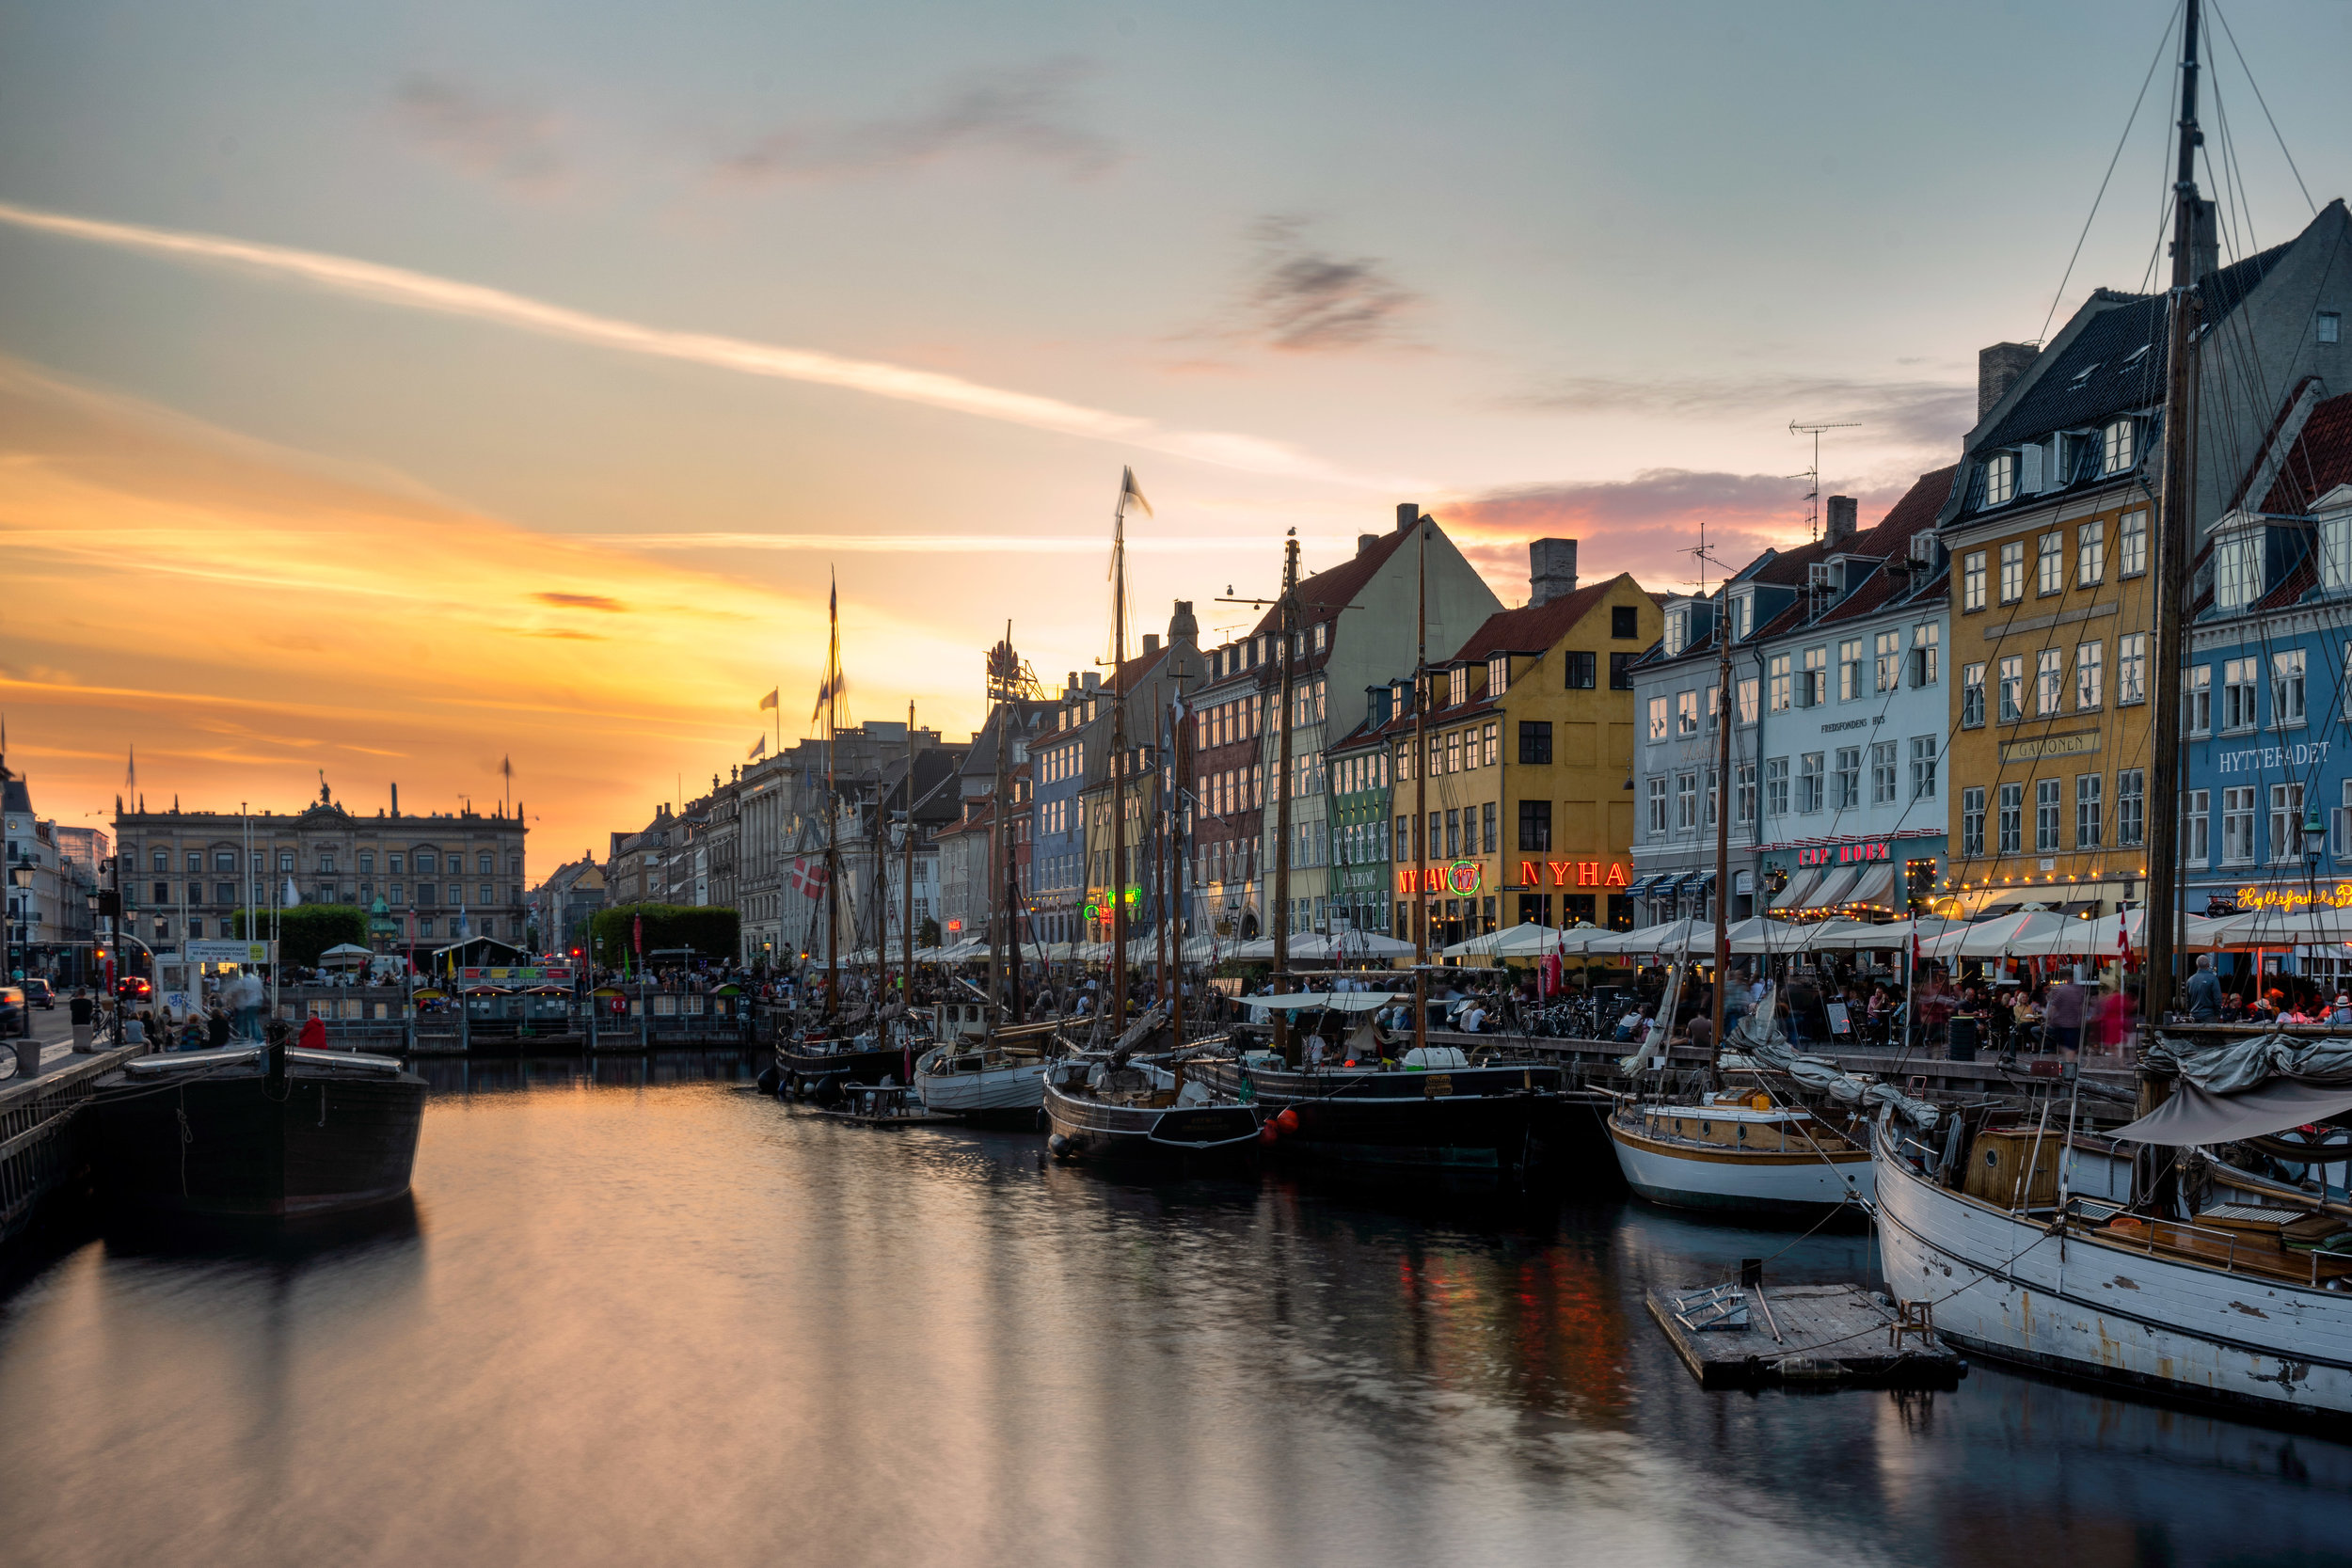 copenhagen. denmark. travel. adventure. europe. scandinavia. history. travelblog. classic view of the city. nyhavn. sunset.jpg